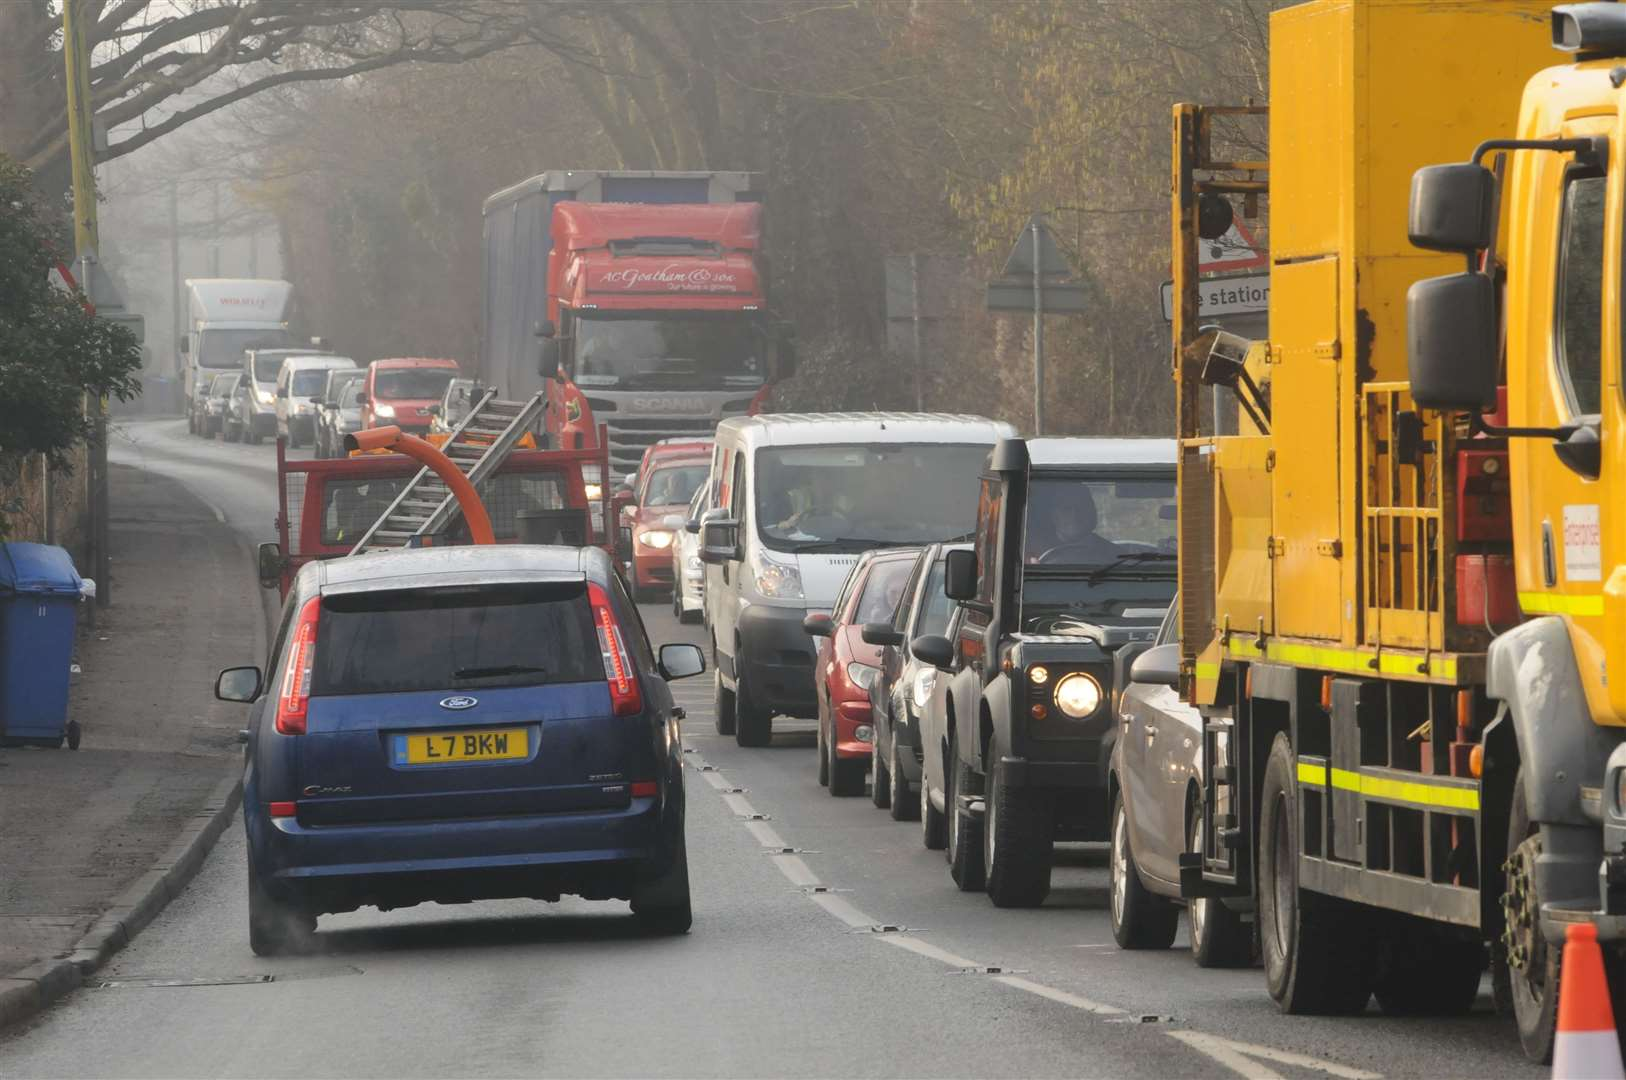 It's hoped the redesigned junction will ease congestion on the A251